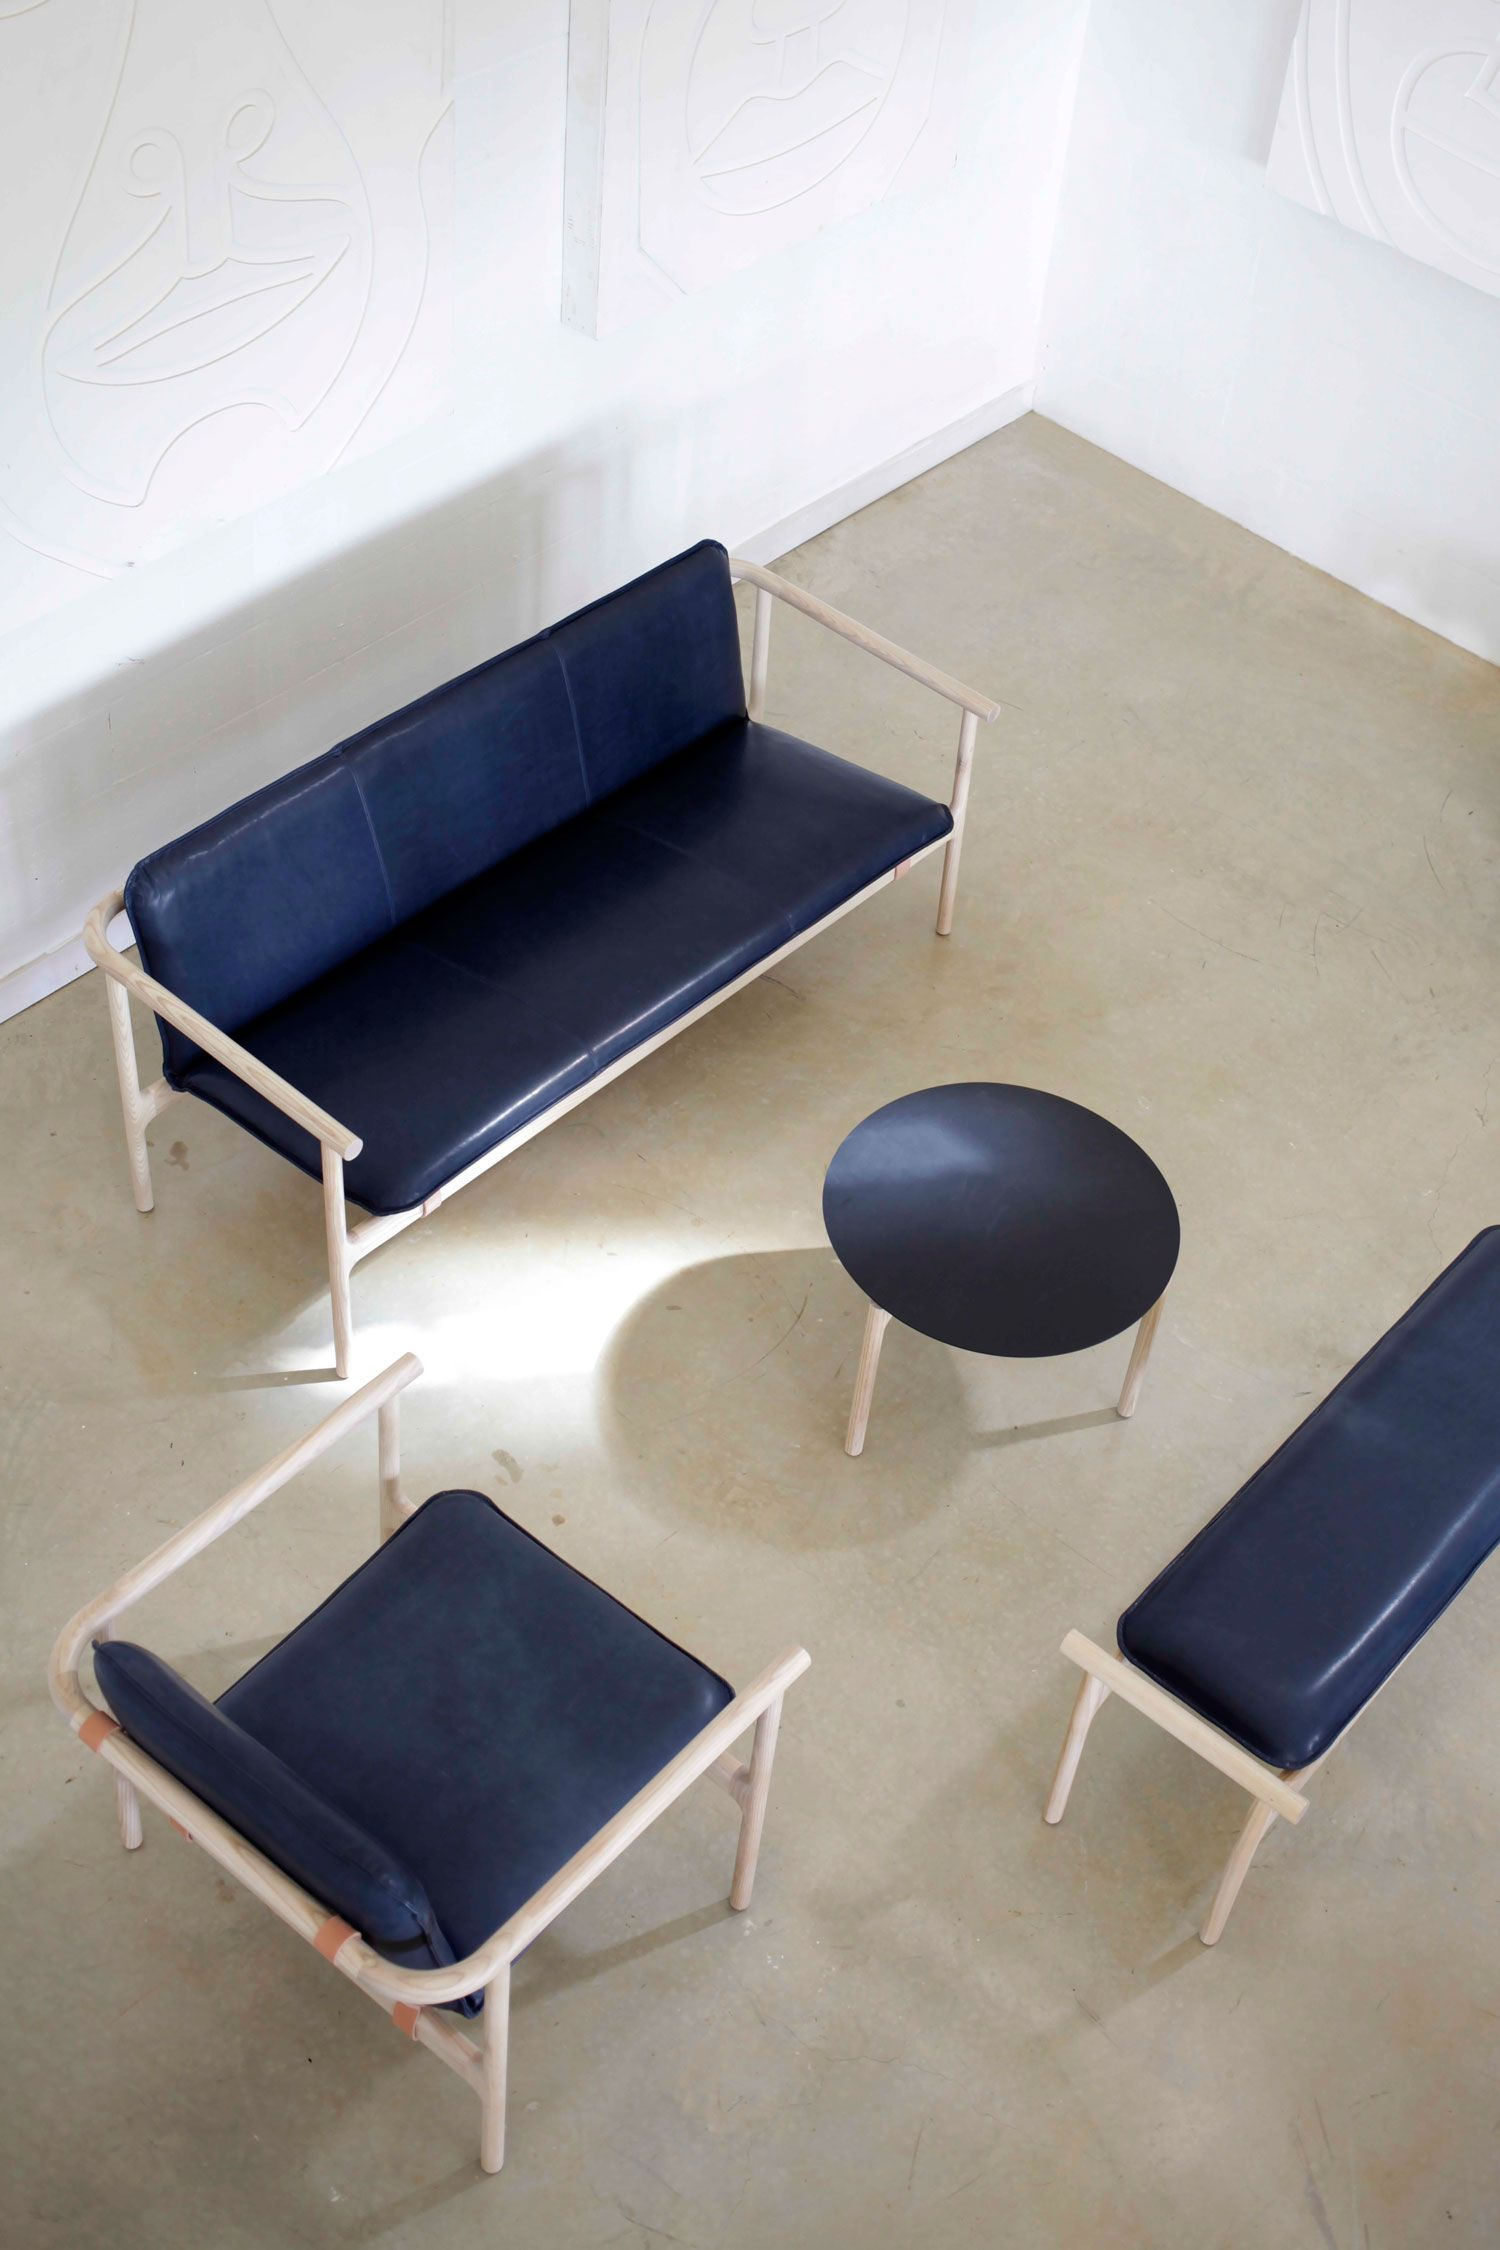 japanese minimalist furniture. Hoshi Collection By Tom Skeehan For Stylecraft. Minimalist DesignJapanese MinimalismJapanese FurnitureTomsThe Japanese Furniture